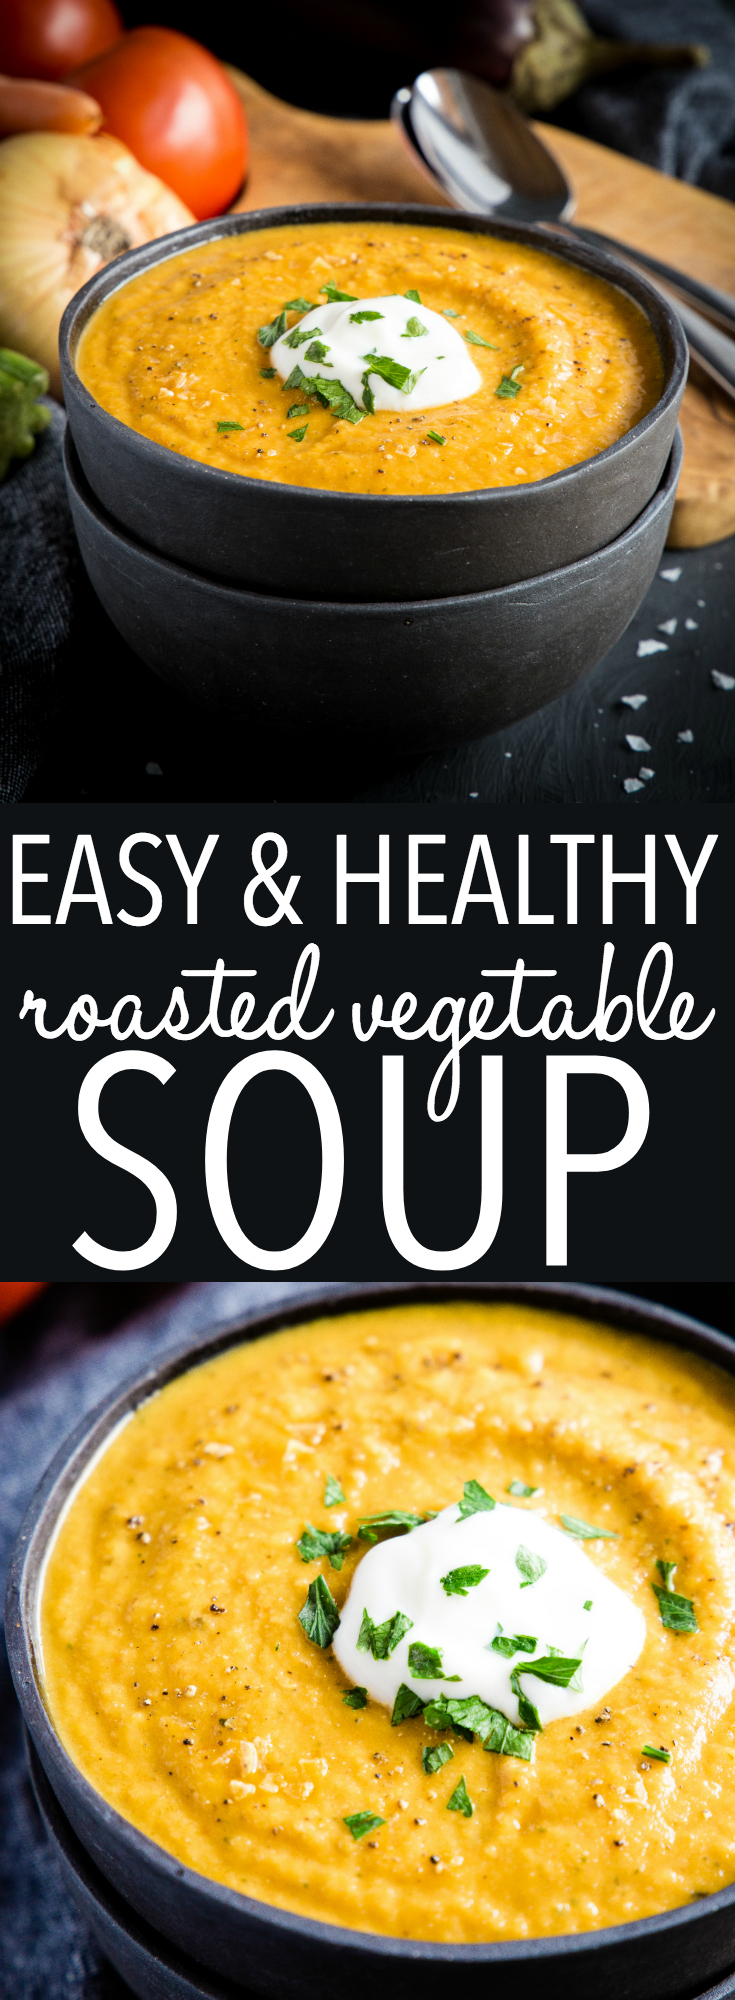 This Easy Healthy Roasted Vegetable Soup is a simple healthy soup recipe that's packed with freshly roasted seasonal vegetables! It's quick and easy to make! Recipe from thebusybaker.ca! #soup #autumn #fall #vegetables #vegetablesoup #vegetarian #vegan #roastedveggies #winter #weightwatchers #healthy #wholesome #coconut #keto via @busybakerblog